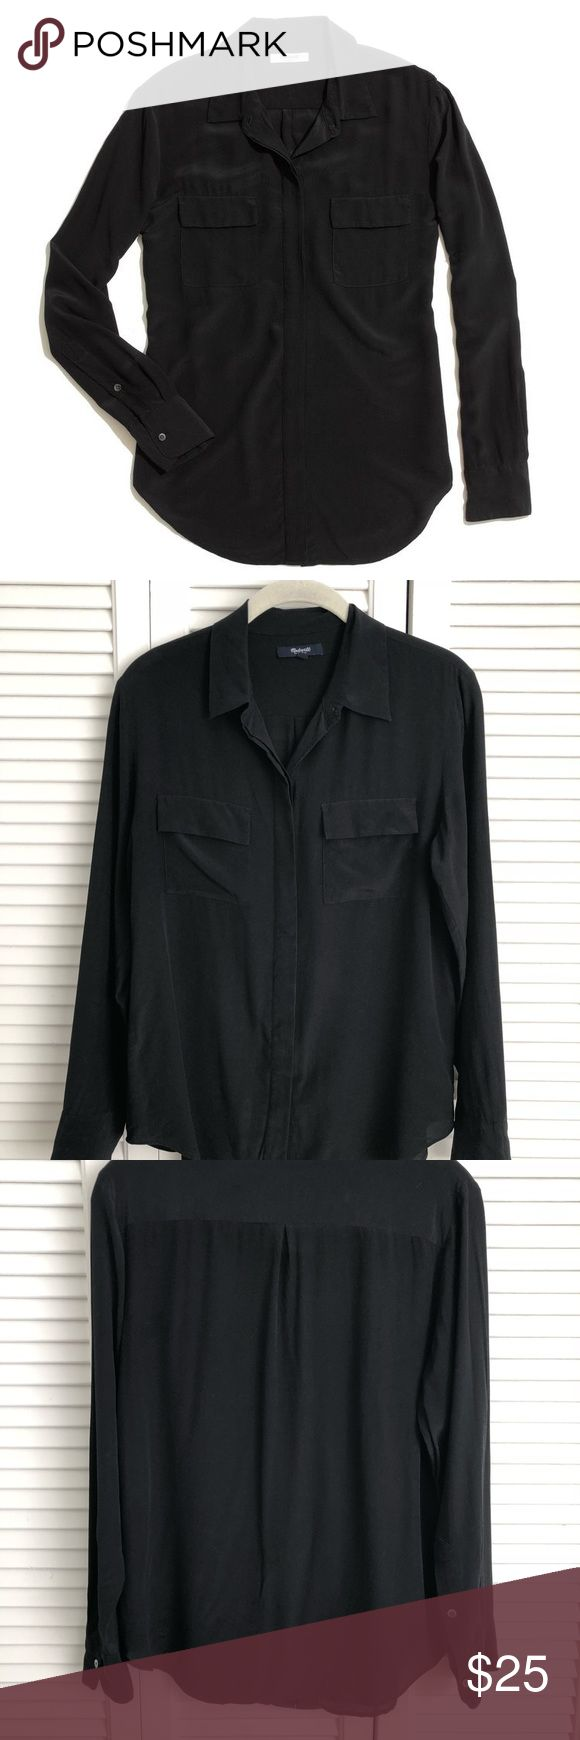 """Madewell Black silk cargo shirt long sleeve small Madewell silk cargo shirt. Tag says small but it might fit better on a XS, please see measurements:   Bust measured armpit to armpit = 19""""  Sleeve length from shoulder seam = 22.5""""  Back length collar to hem = 27"""" Madewell Tops Button Down Shirts"""